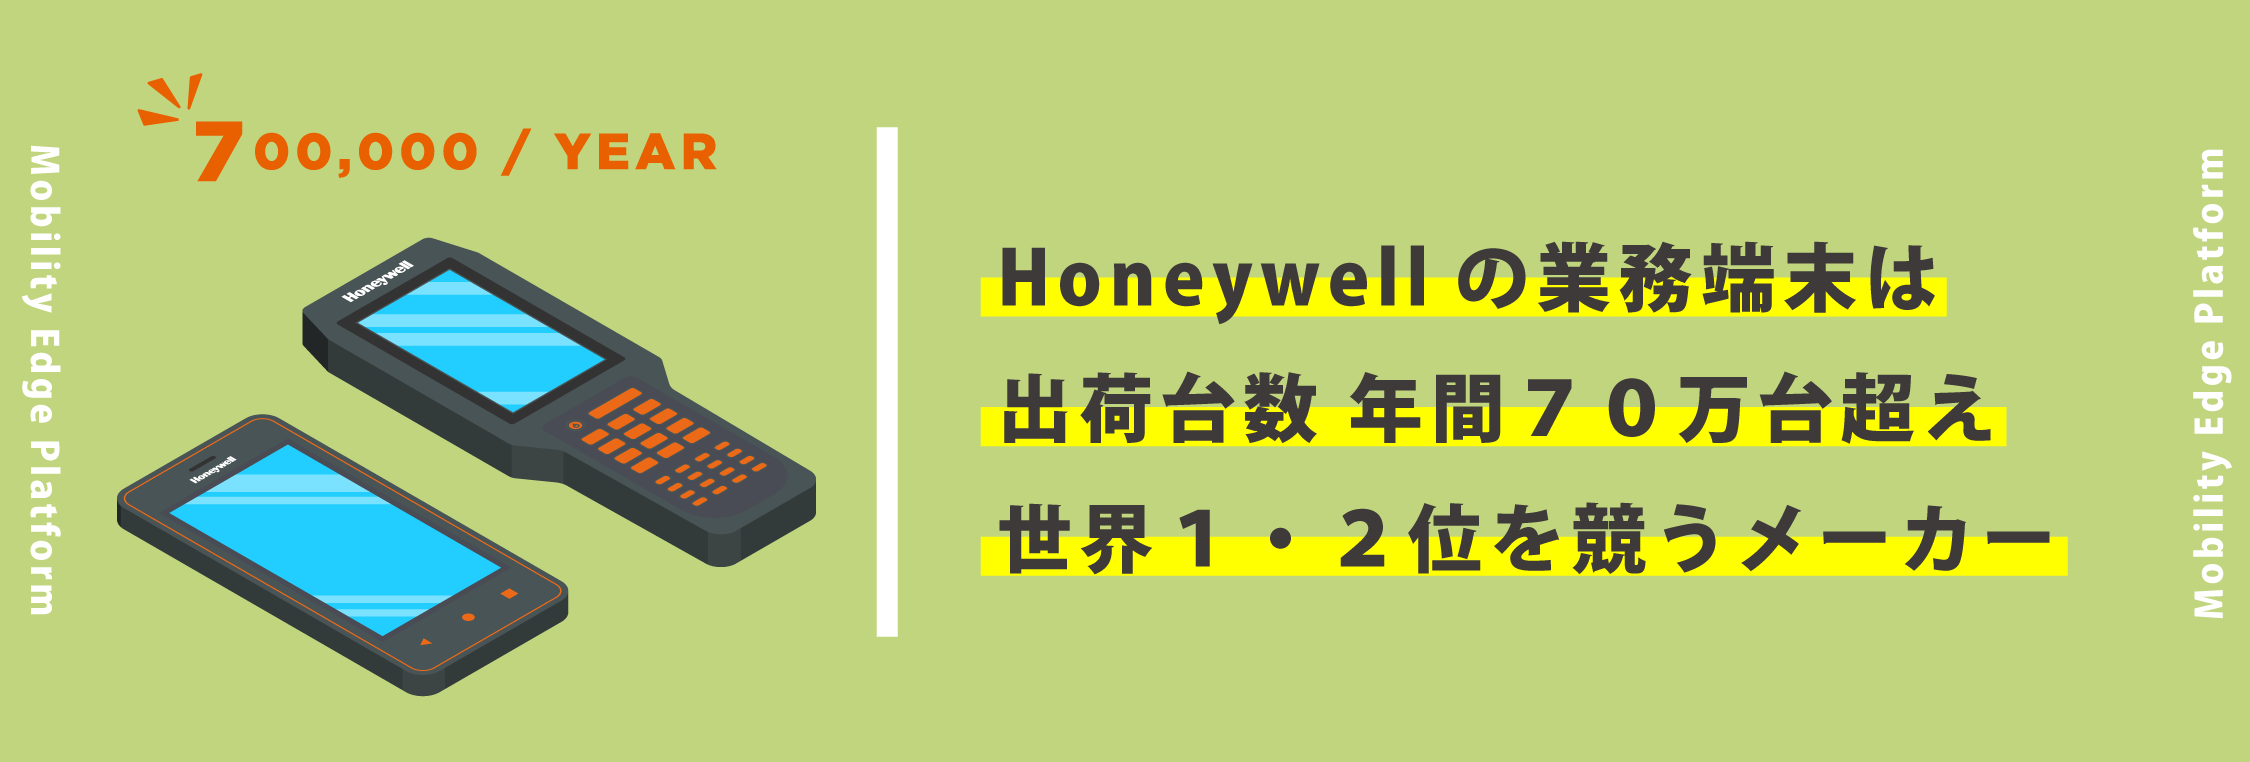 HoneywellMobilityEdge